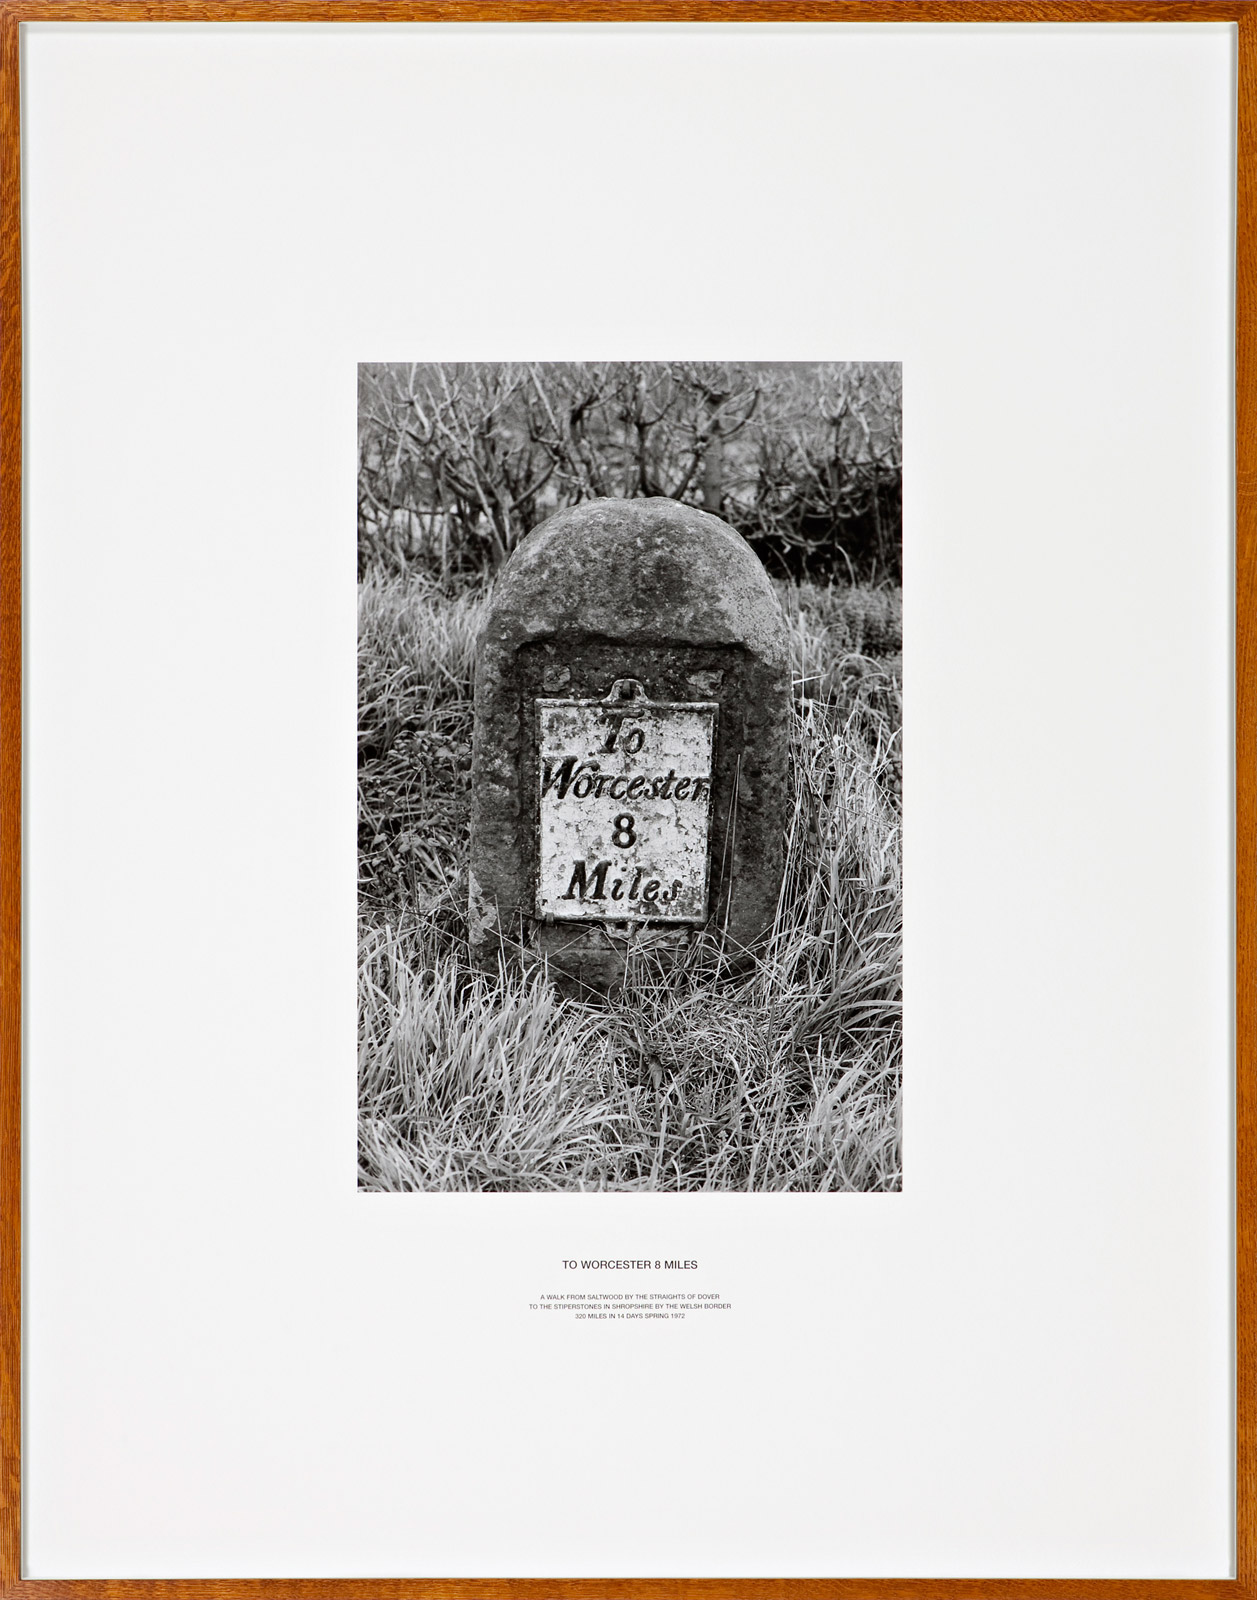 To Worcester 8 Miles, England 1972, silver gelatin photograph and letterpress in artist frame, unique, 141 x 111 cm